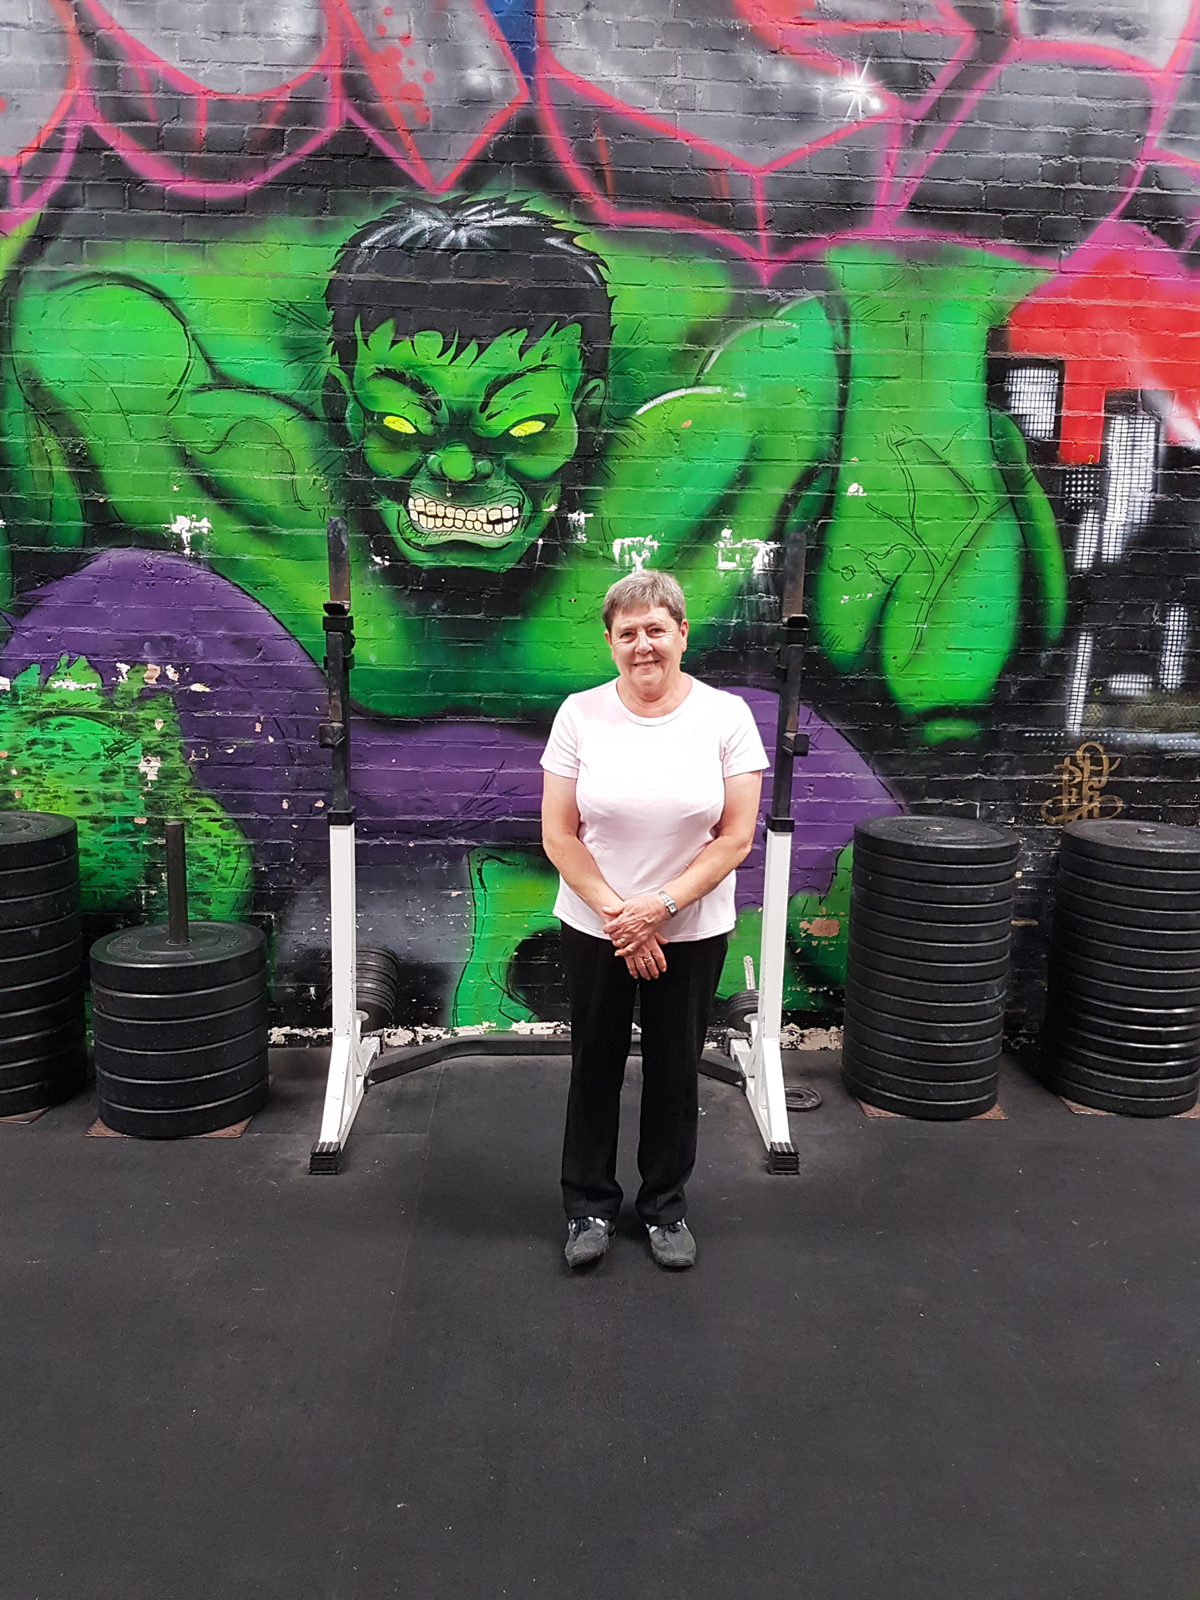 CrossFit 50+ Sessions Bring More Than Just Fitness